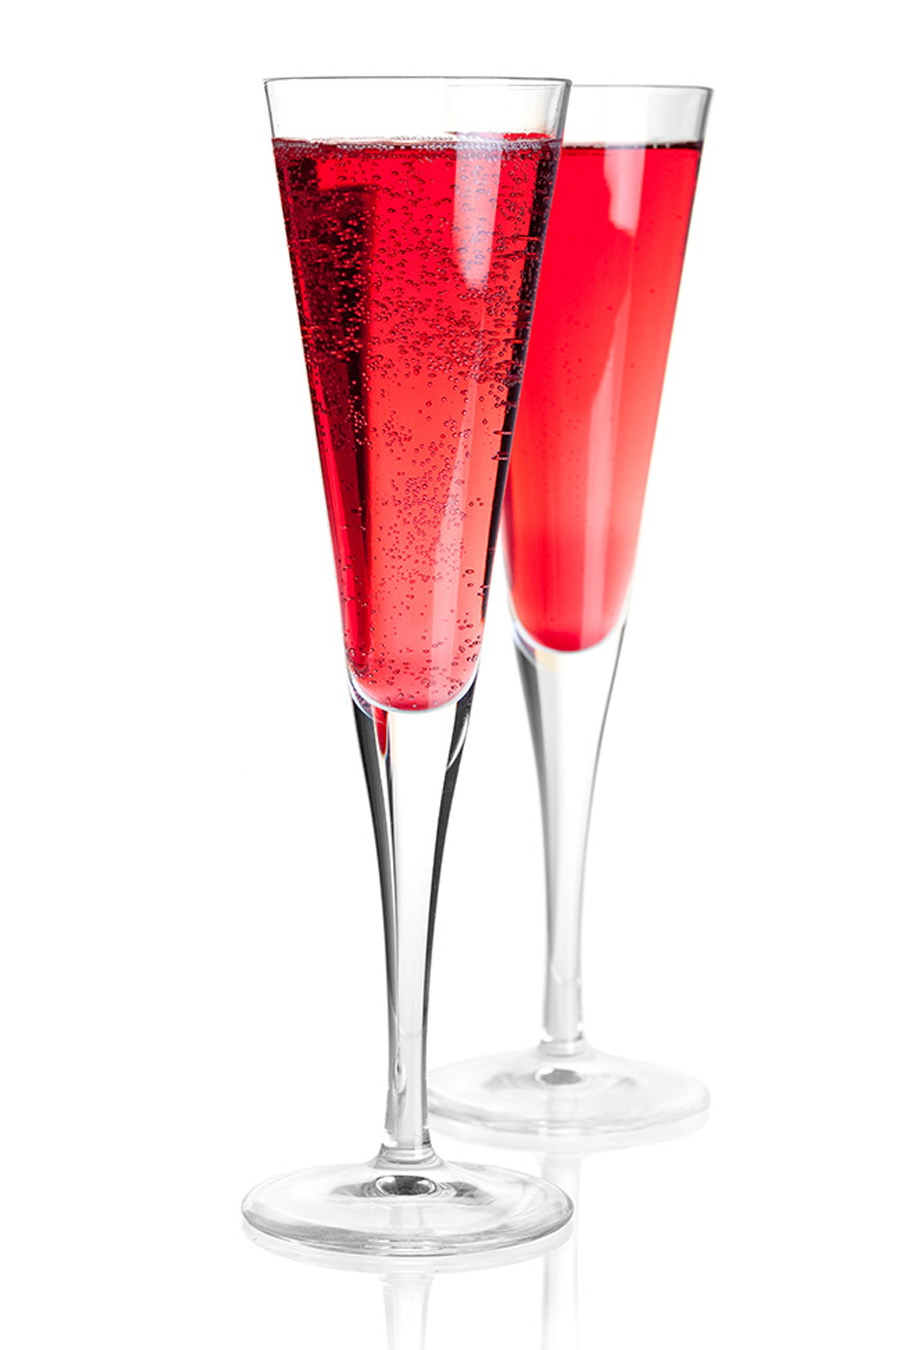 10 classic champagne cocktails by fashion cleaners omaha for Cocktails made with champagne